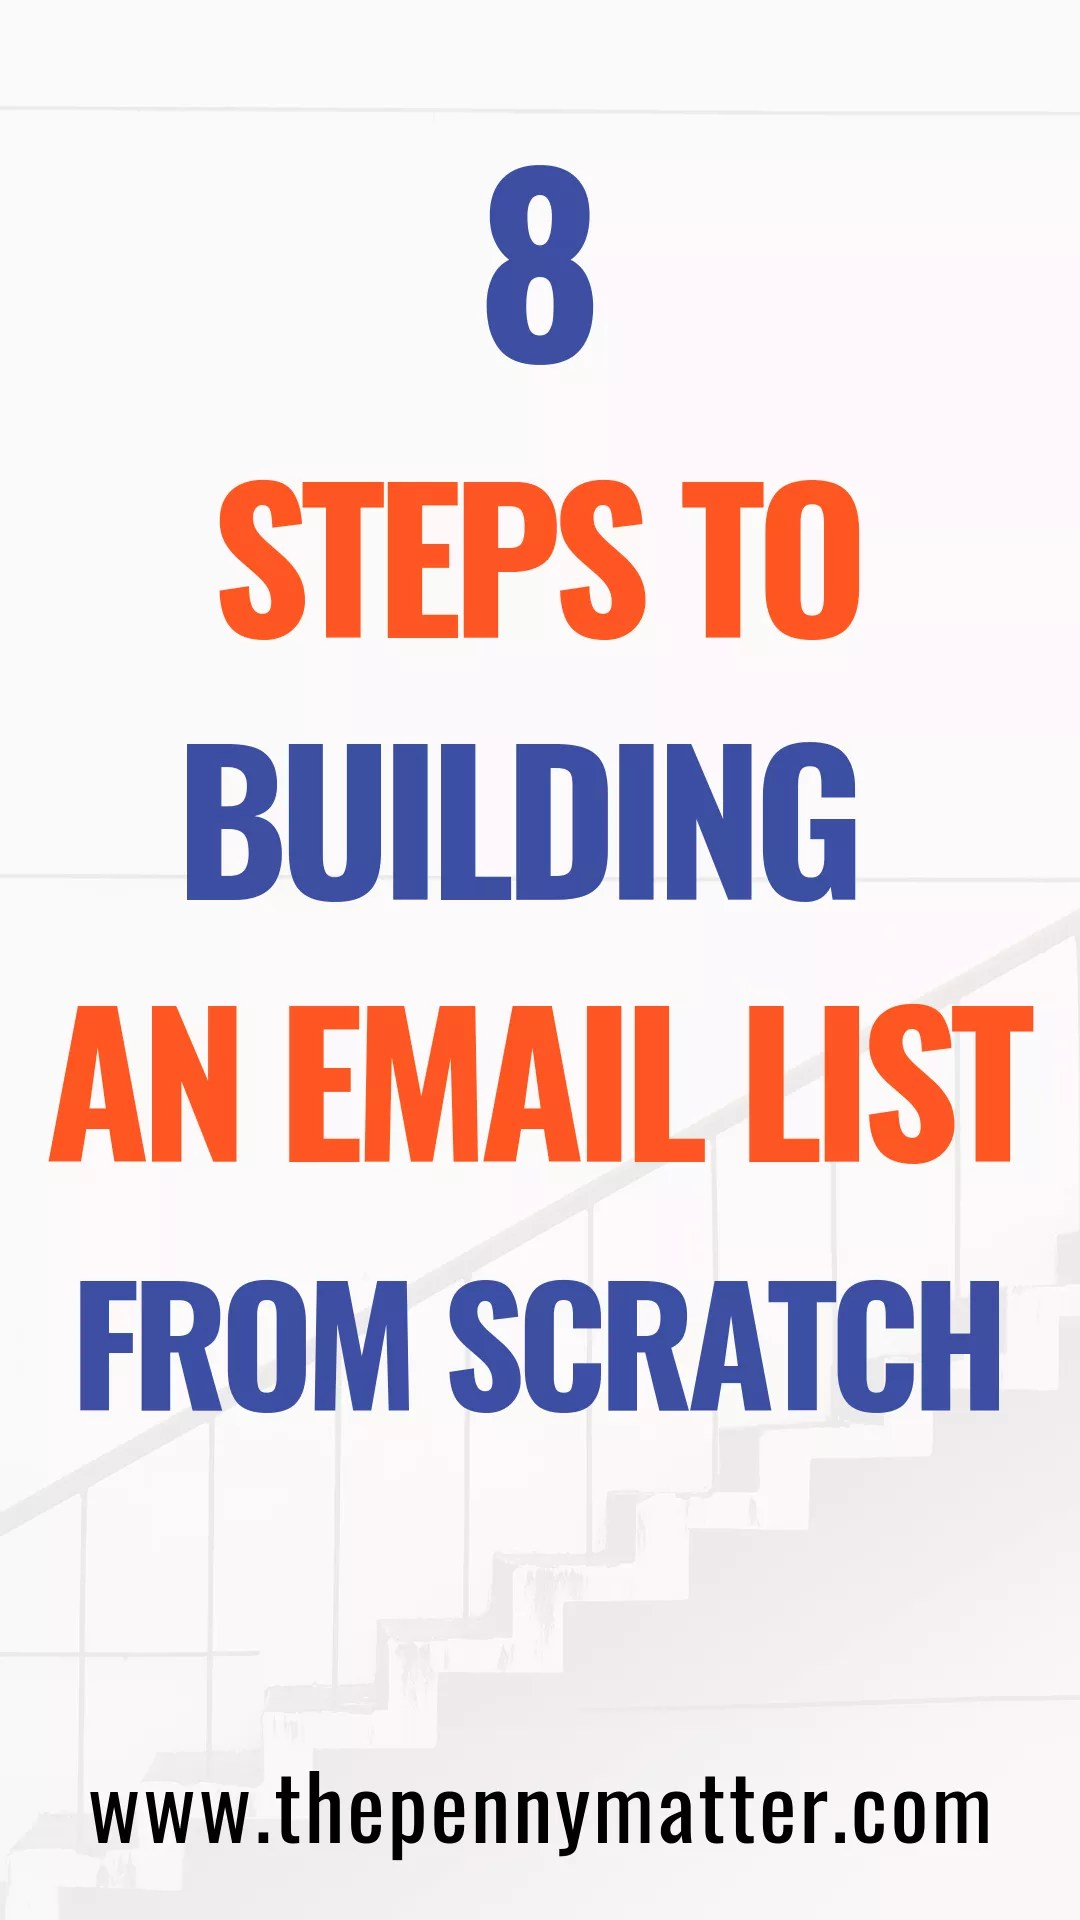 How to build an email list from scratch in 2021